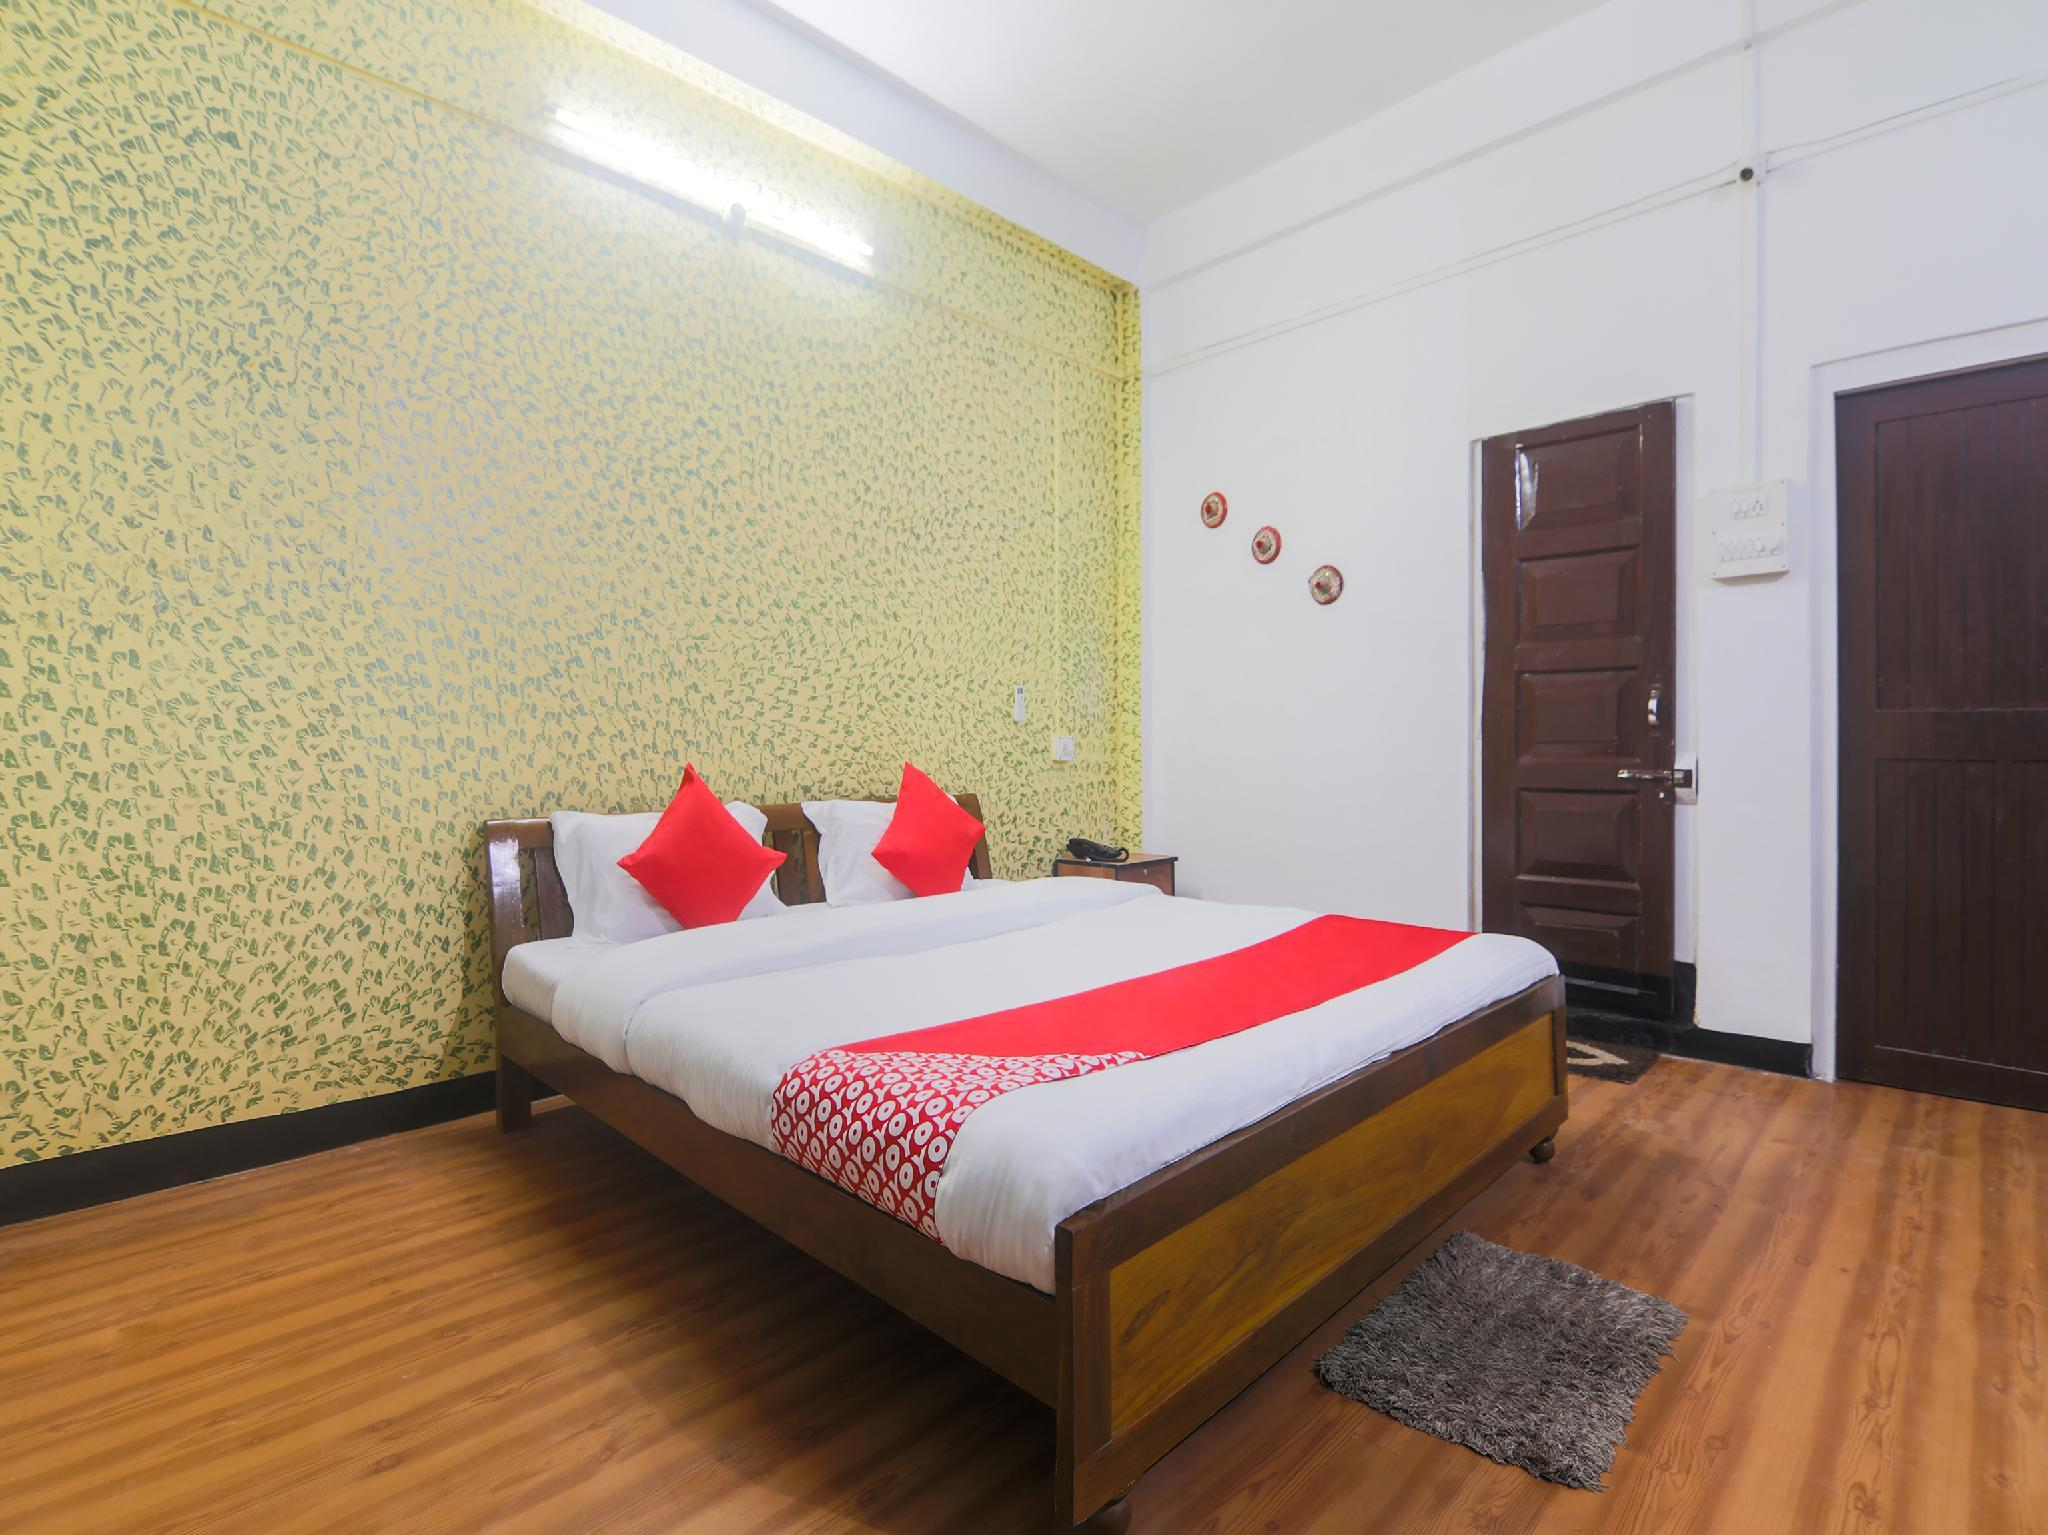 OYO 24676 Purbanchal Guest House